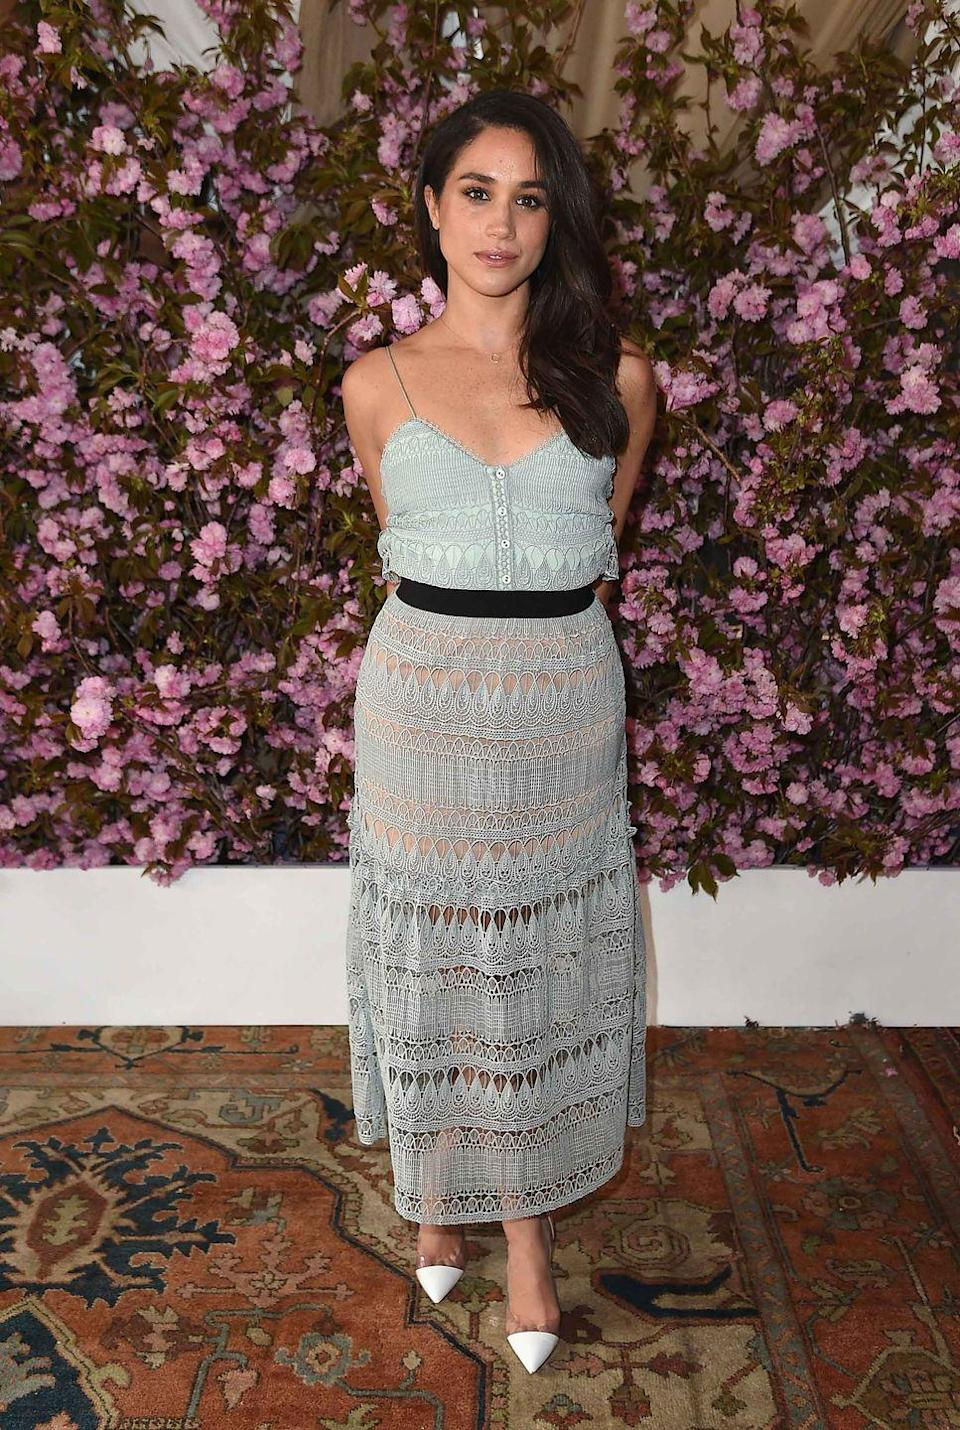 """<p>Markle attends the <em>Glamour</em> and L'Oreal Paris Celebrate 2016 College Women of the Year at NoMad Hotel Rooftop in New York City wearing a lace dress by Self-Portrait. </p><p><a class=""""link rapid-noclick-resp"""" href=""""https://go.redirectingat.com?id=74968X1596630&url=http%3A%2F%2Fwww.intermixonline.com%2Fself-portrait%2Fbandeau-chevron-knit-maxi-dress%2FSP17-072L.html&sref=https%3A%2F%2Fwww.townandcountrymag.com%2Fstyle%2Ffashion-trends%2Fg3272%2Fmeghan-markle-preppy-style%2F"""" rel=""""nofollow noopener"""" target=""""_blank"""" data-ylk=""""slk:SHOP SIMILAR"""">SHOP SIMILAR</a> <em>Self-Portrait Bandeau Chevron Knit Maxi Dress, $580 </em><br></p>"""